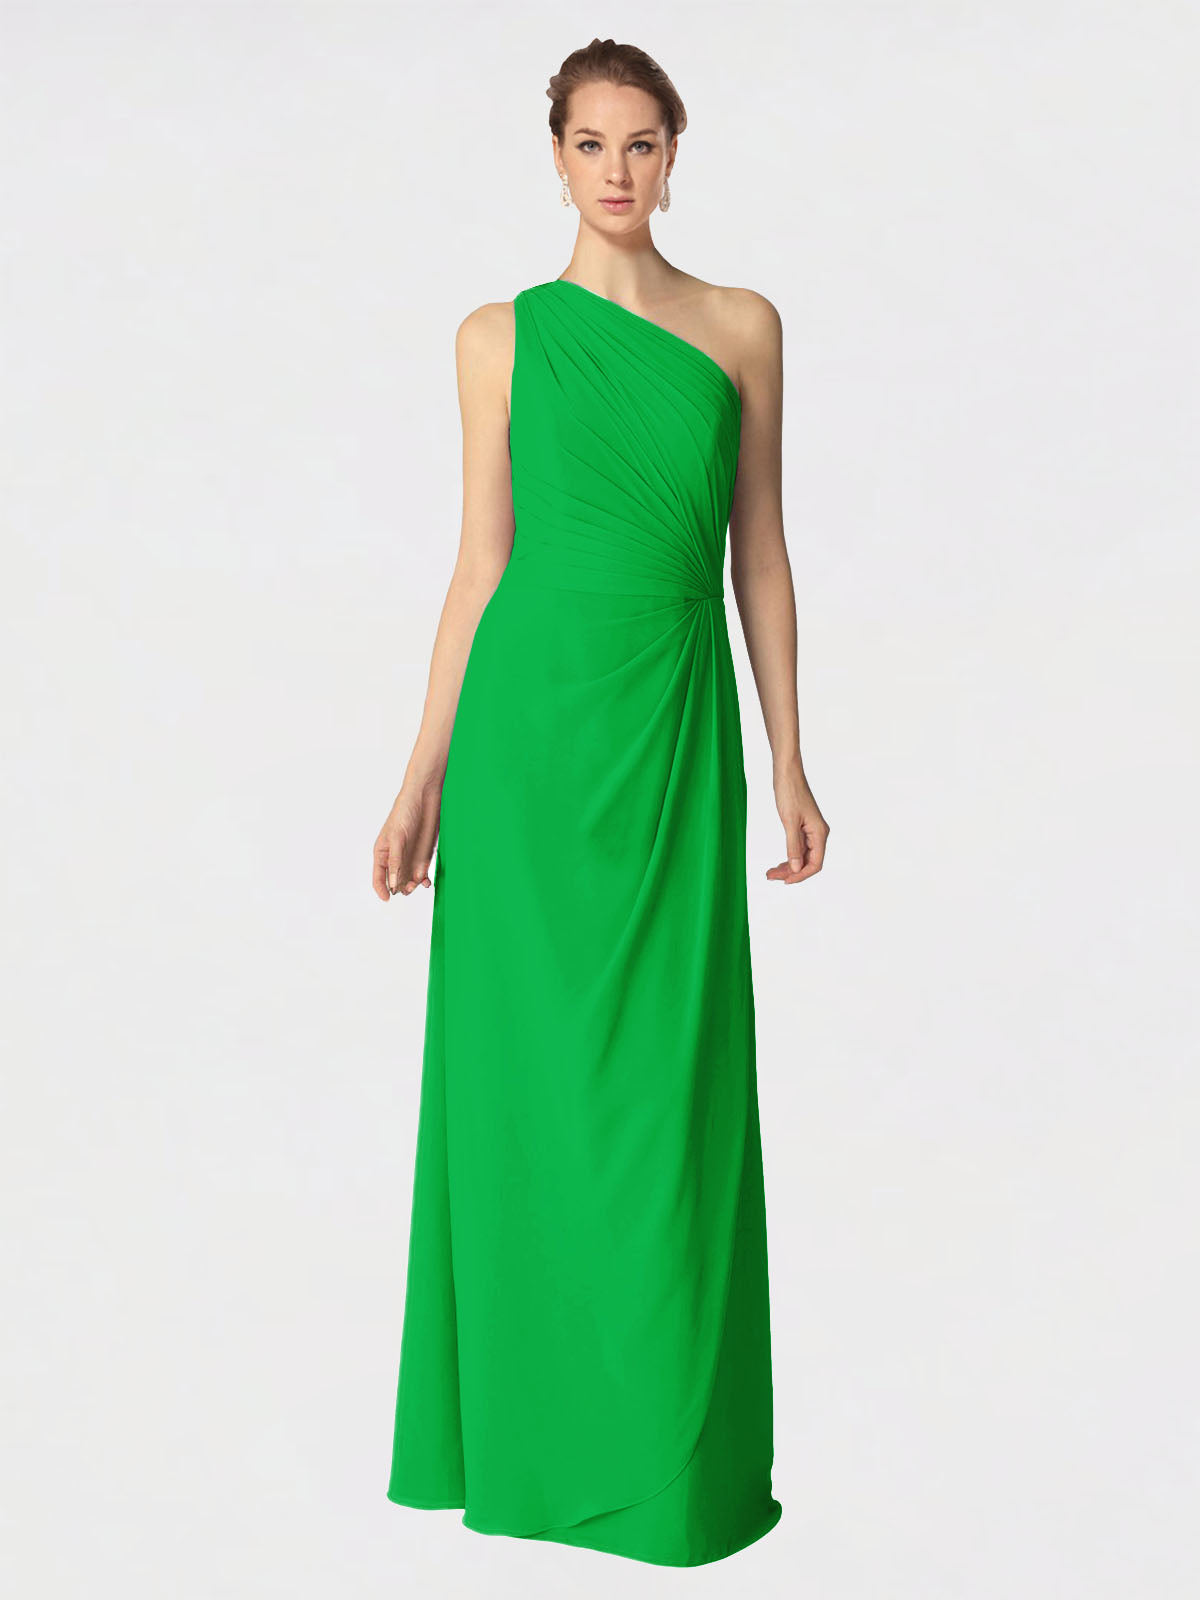 Long A-Line One Shoulder Sleeveless Green Chiffon Bridesmaid Dress Aurora